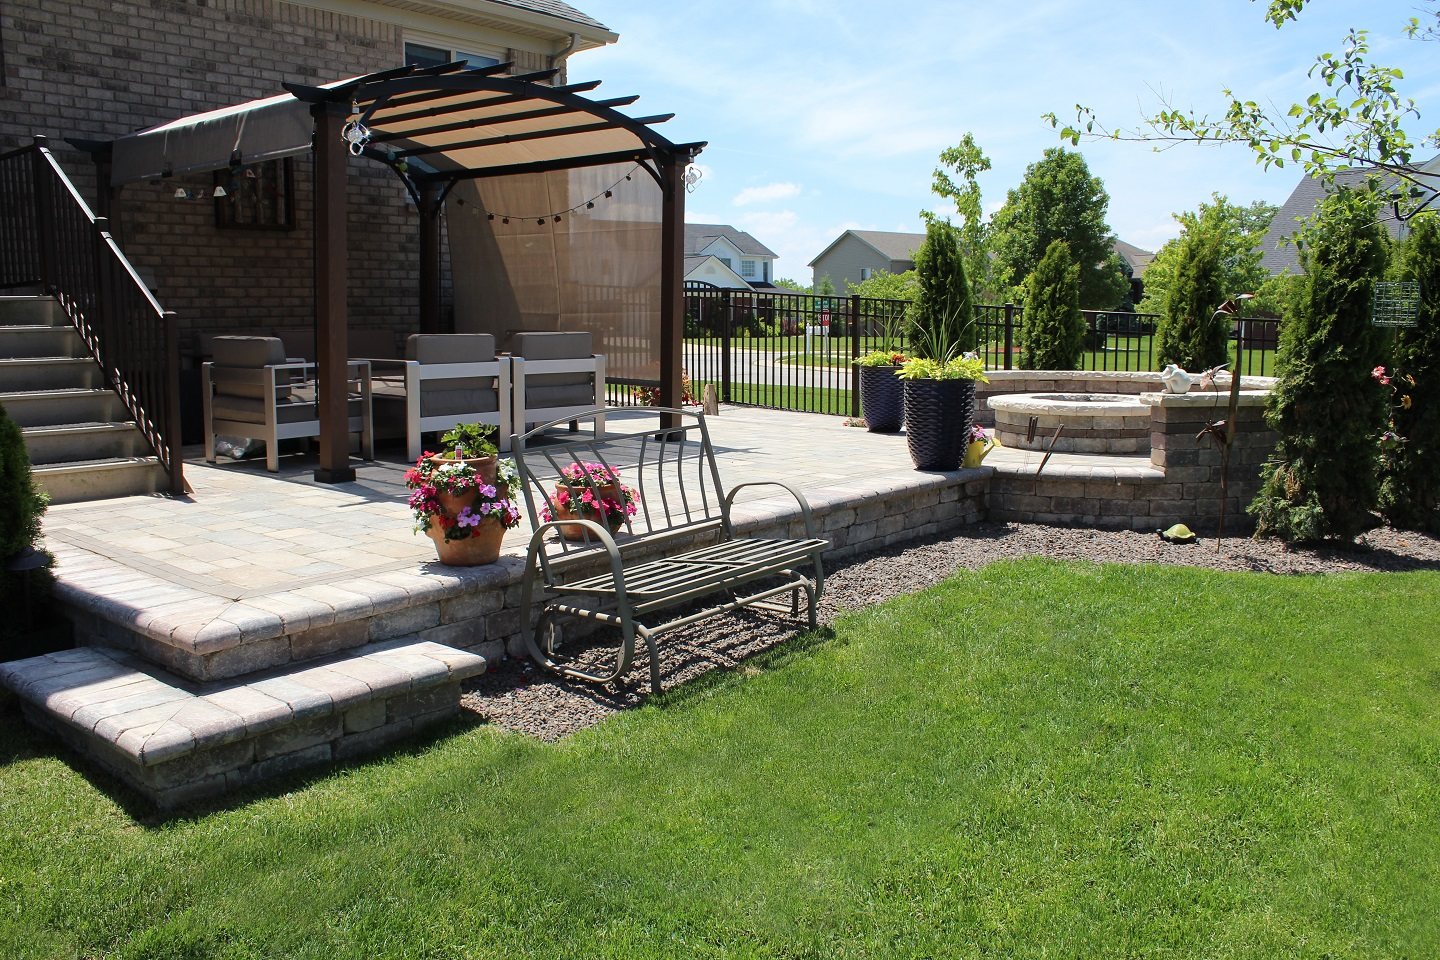 landscaping paver patio and lawn care